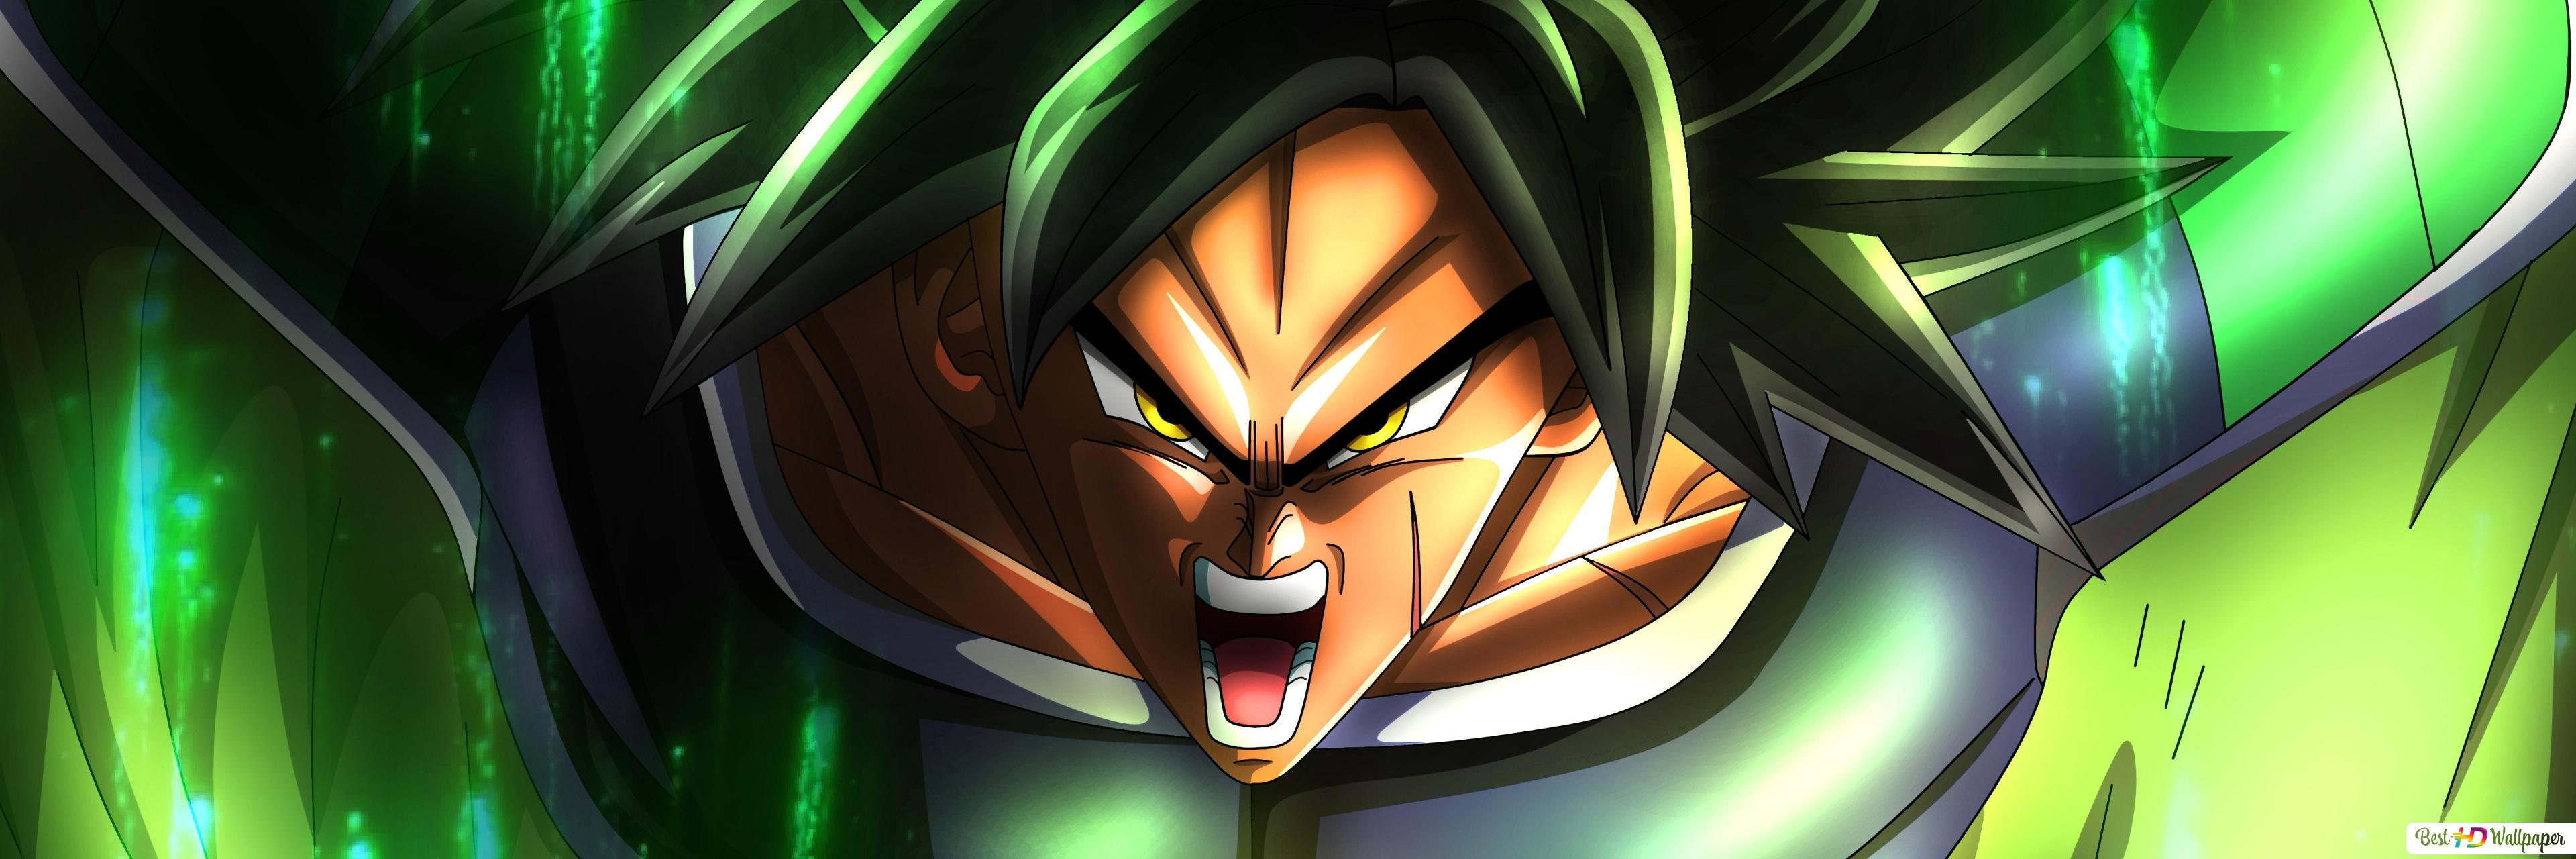 Dbz Dual Screen Wallpapers: Broly HD Wallpaper Download